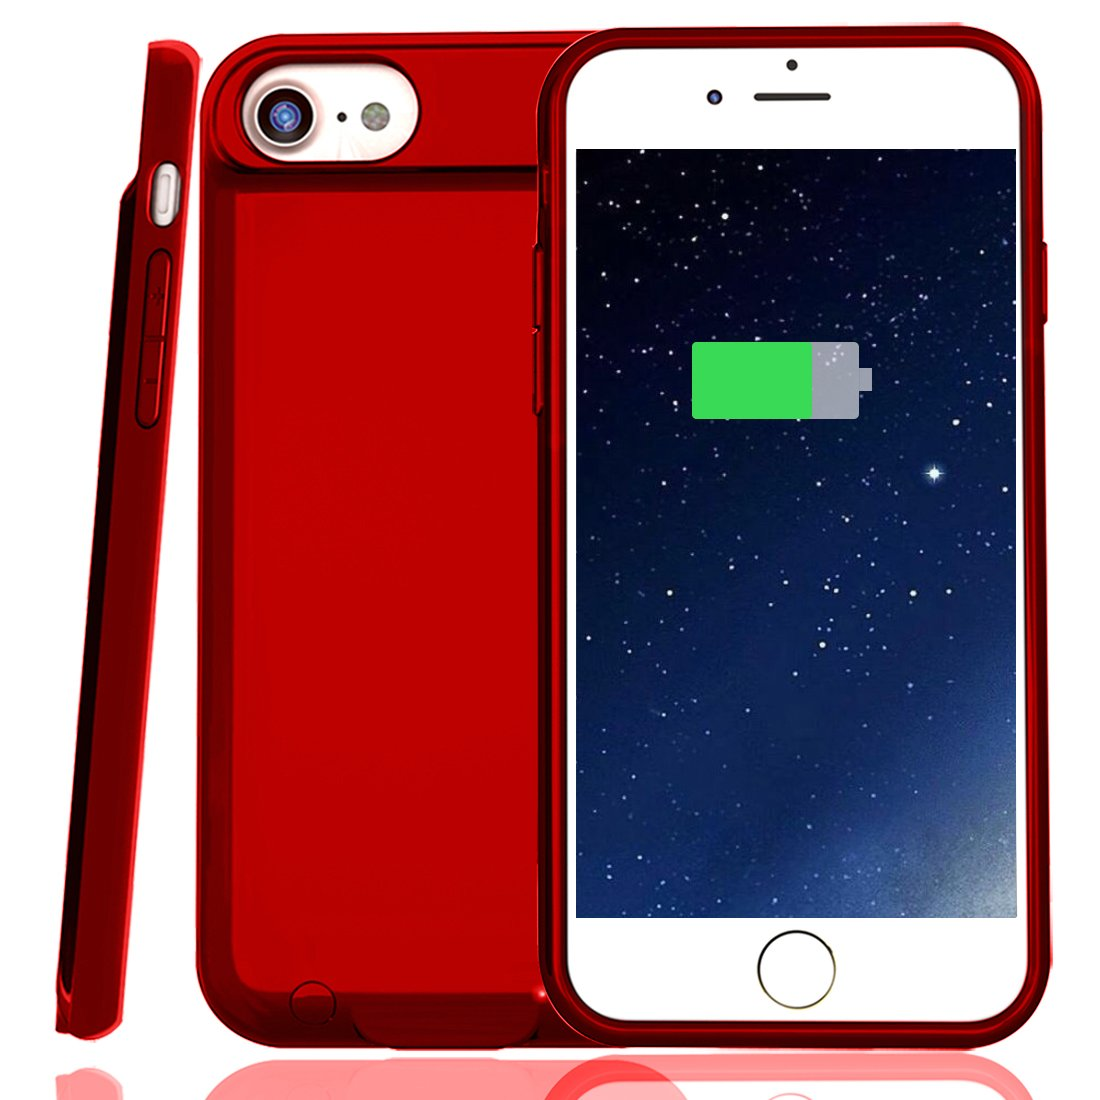 Battery Case for iPhone 7/8, XchuangX 3000mAh Rechargeable Protective Charging Case Slim for Apple iPhone 7/8 (4.7 inch), Support All Types Headphones, Answer Call and Sync-Through-Red